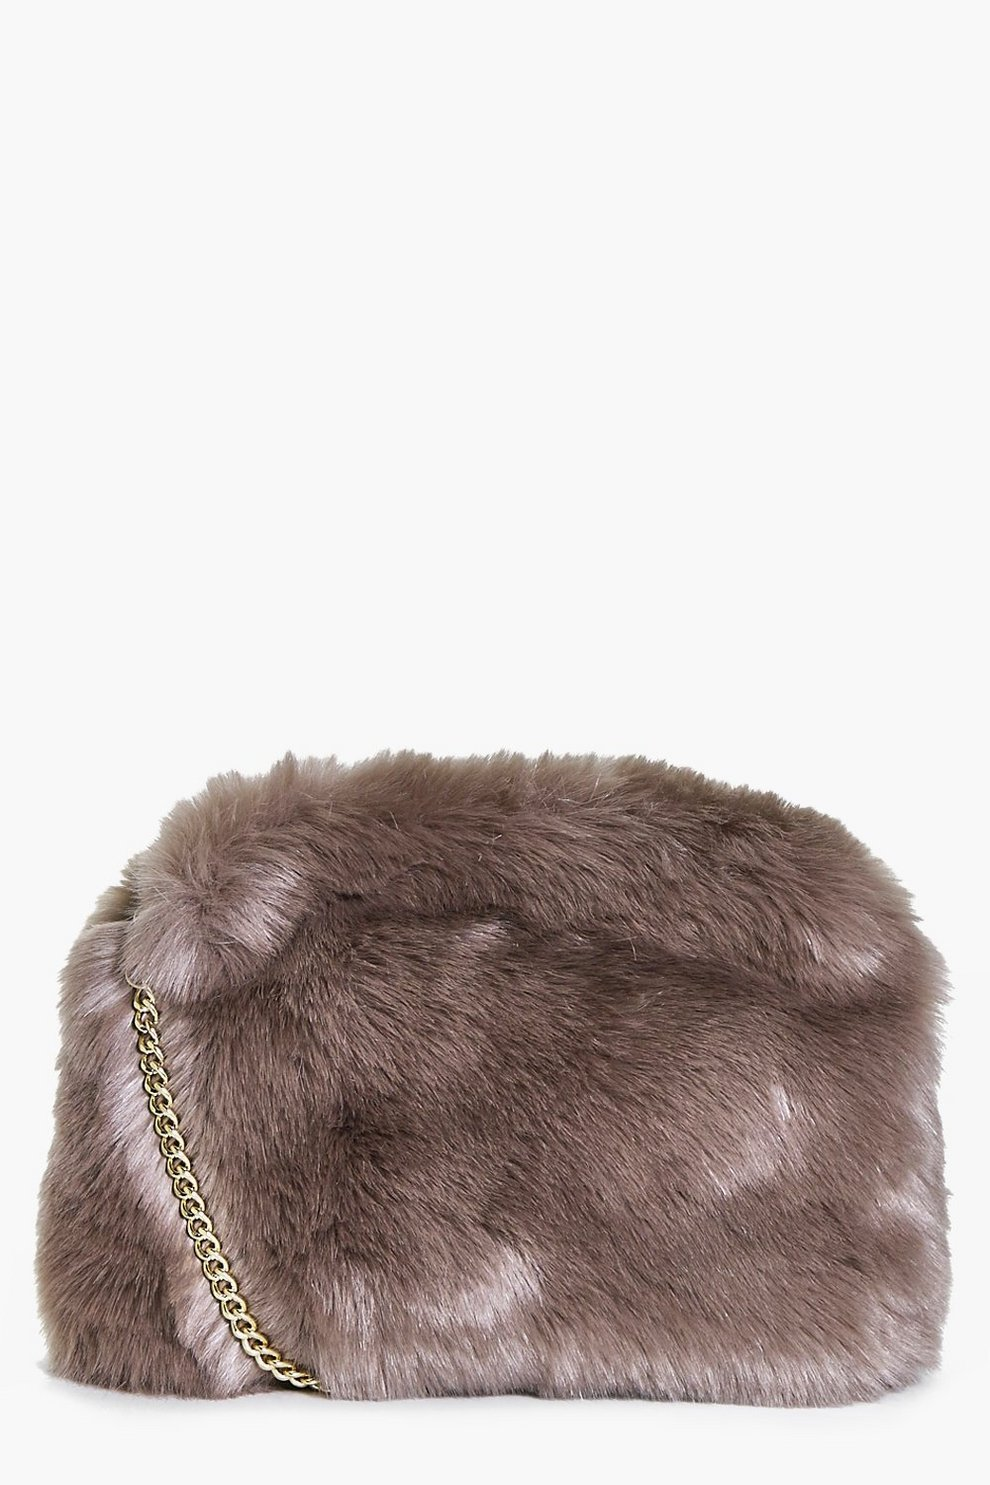 2e19d0fd7 Womens Mink Kara Fluffy Faux Fur Cross Body Bag